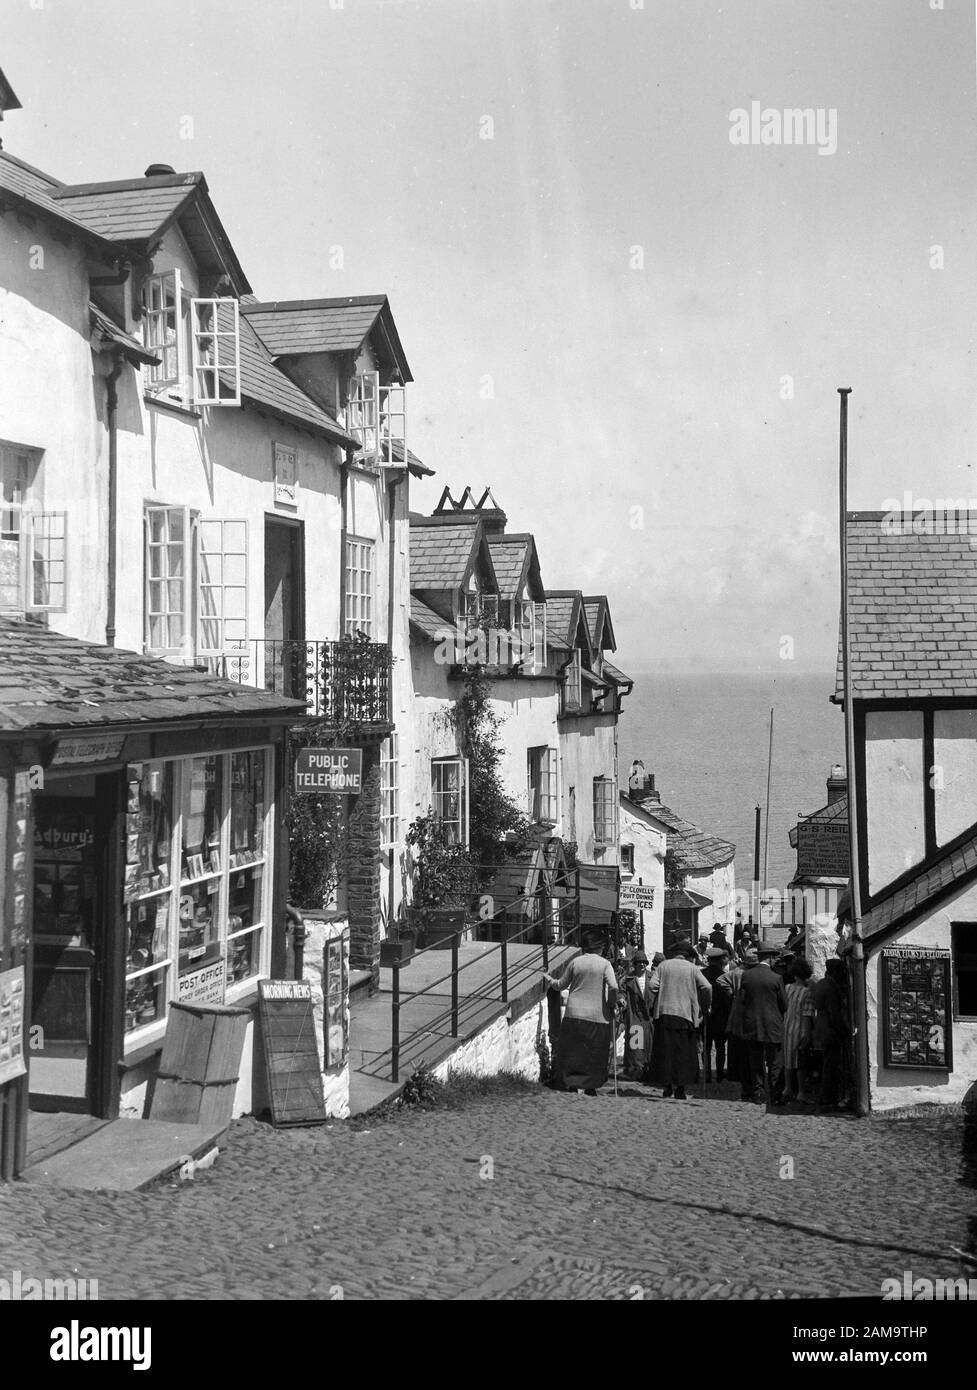 Archive image circa 1920s of Clovelly High Street, Devon, UK. Scanned from original negative Stock Photo